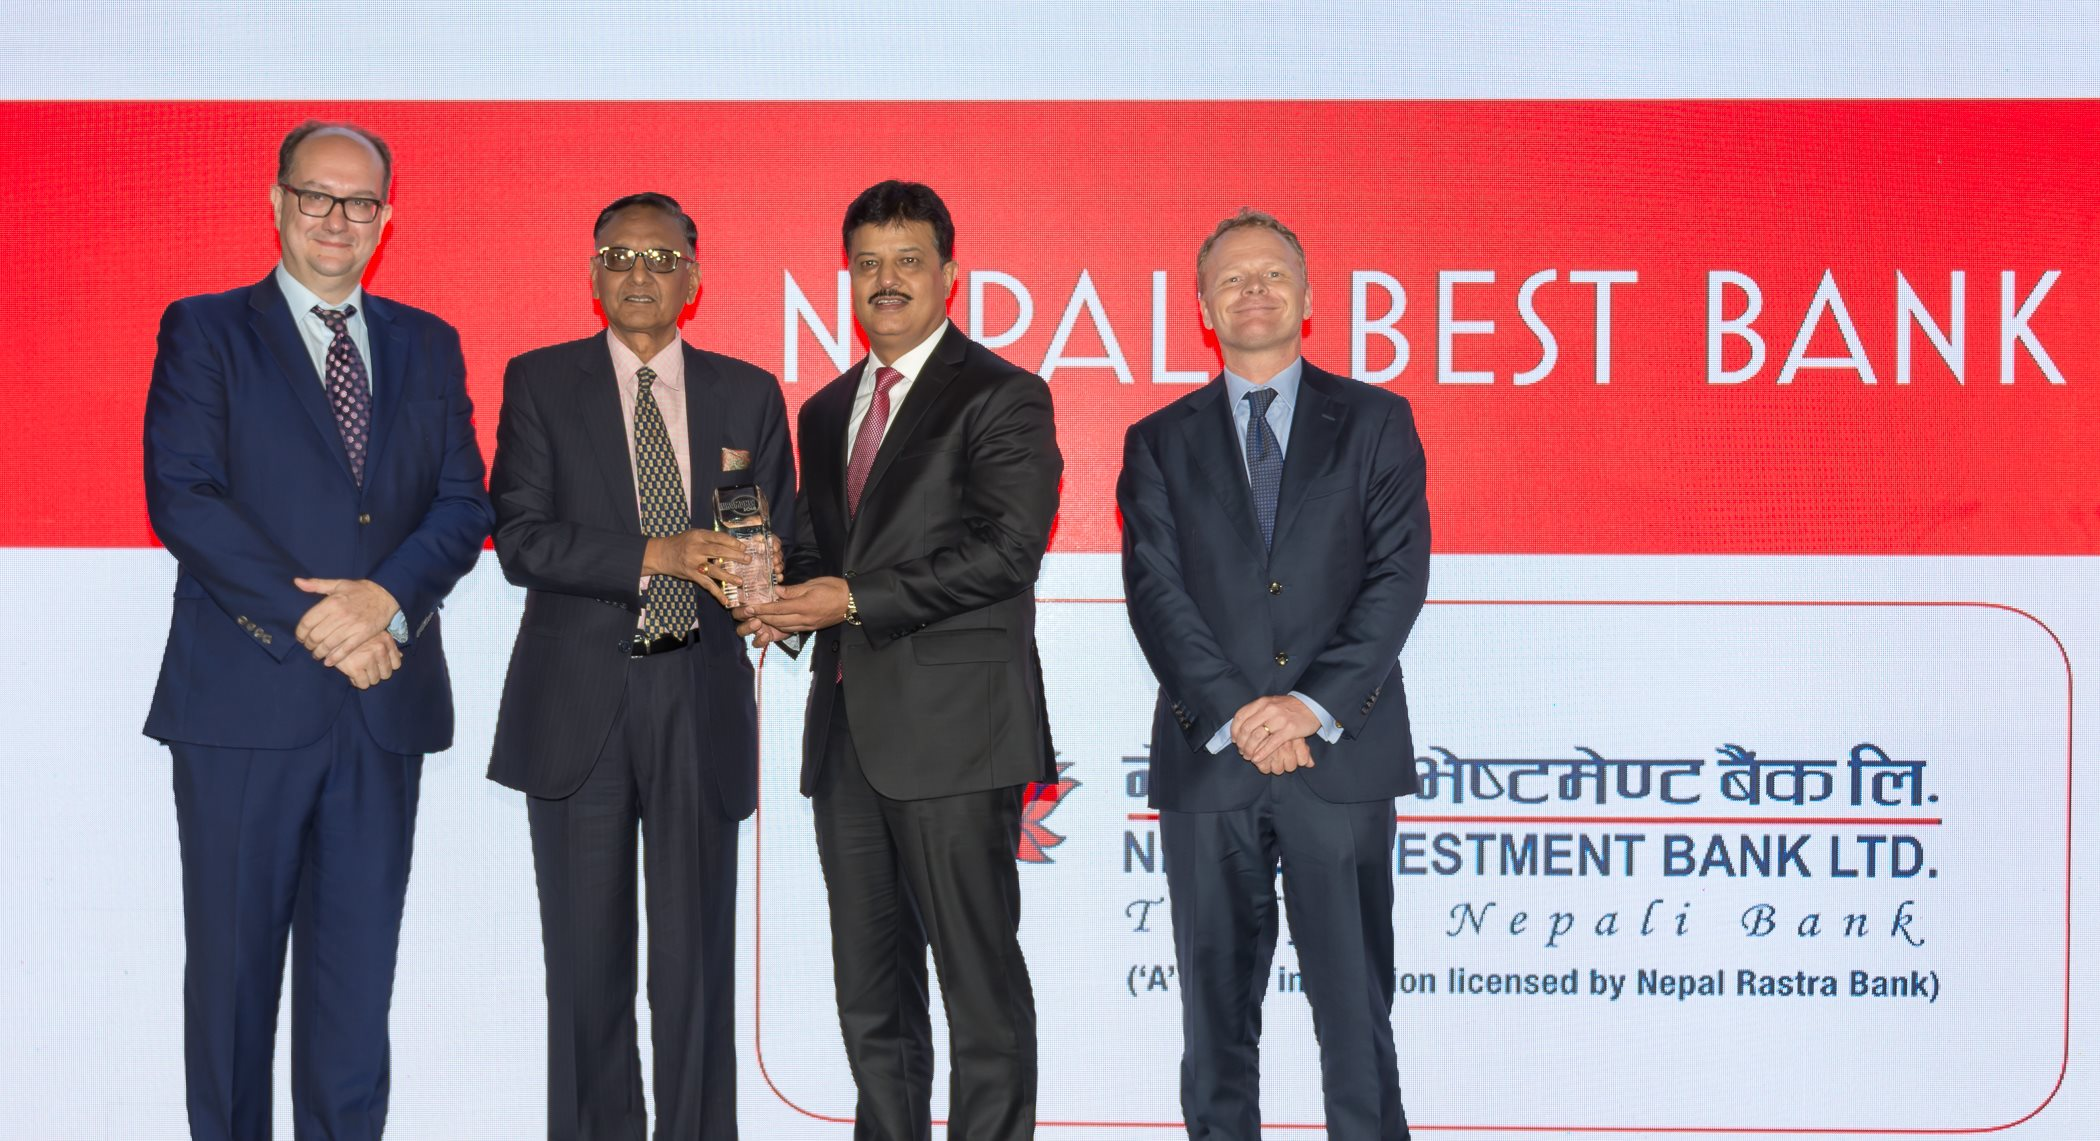 NIBL wins Nepal's Best Bank Award 2018